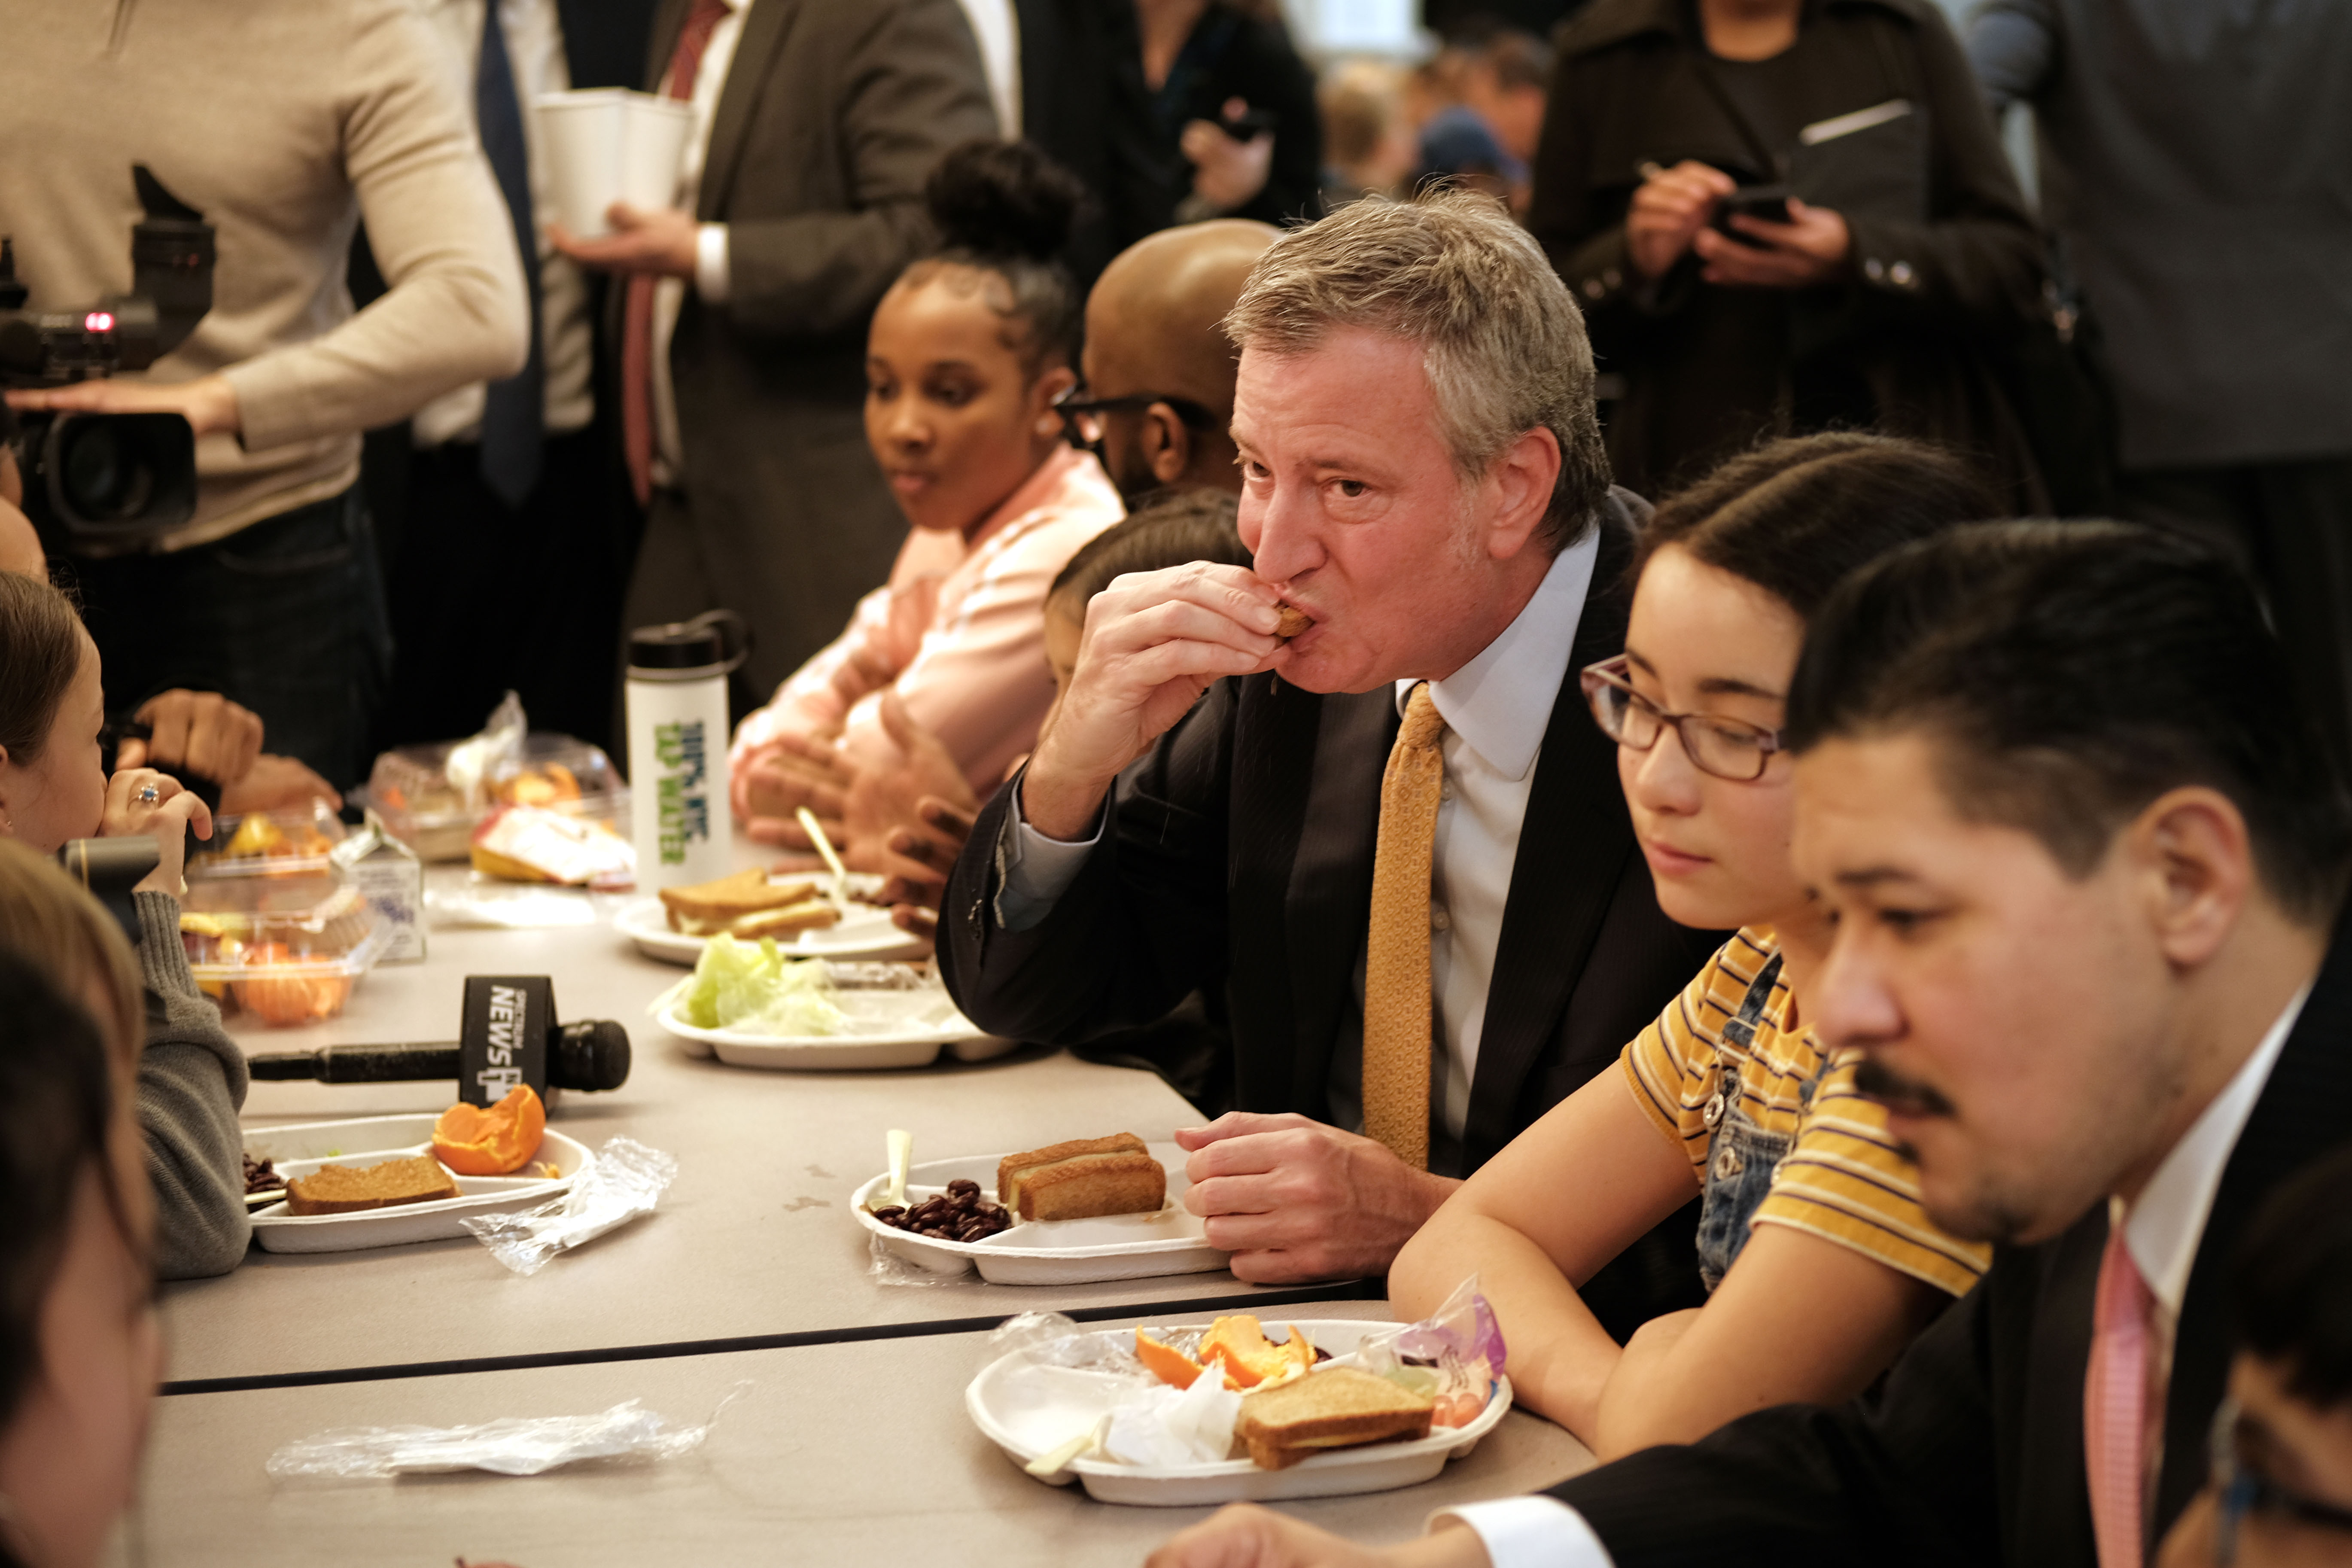 New York Mayor Bill de Blasio joins Schools Chancellor Richard Carranza and school children for lunch at PS130, a Brooklyn public school, for an announcement about Meatless Monday's on March 11, 2019 in New York City. (Photo by Spencer Platt/Getty Images)